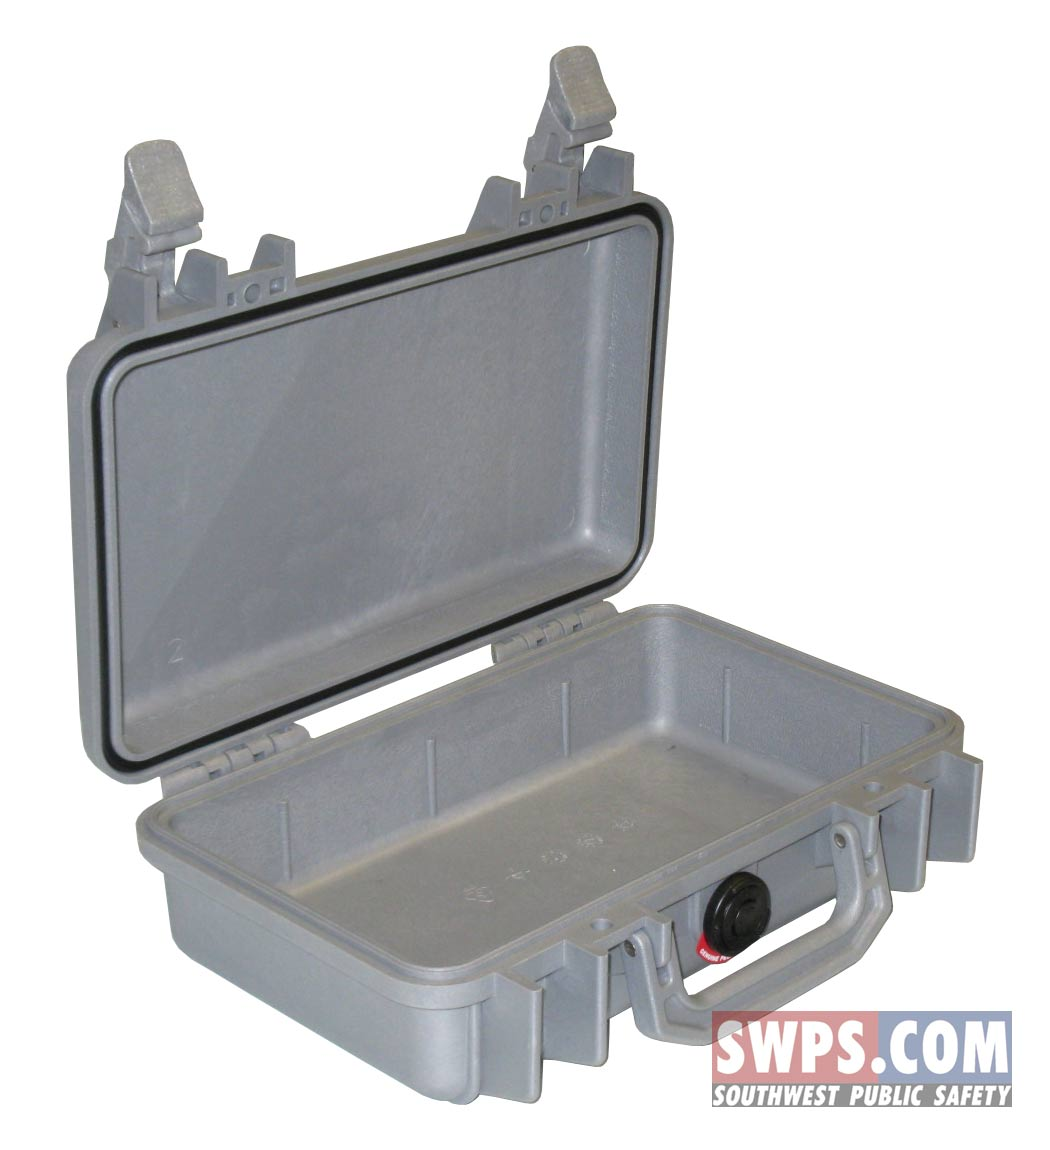 Pelican 1170 Case No Foam Silver From Swps Com